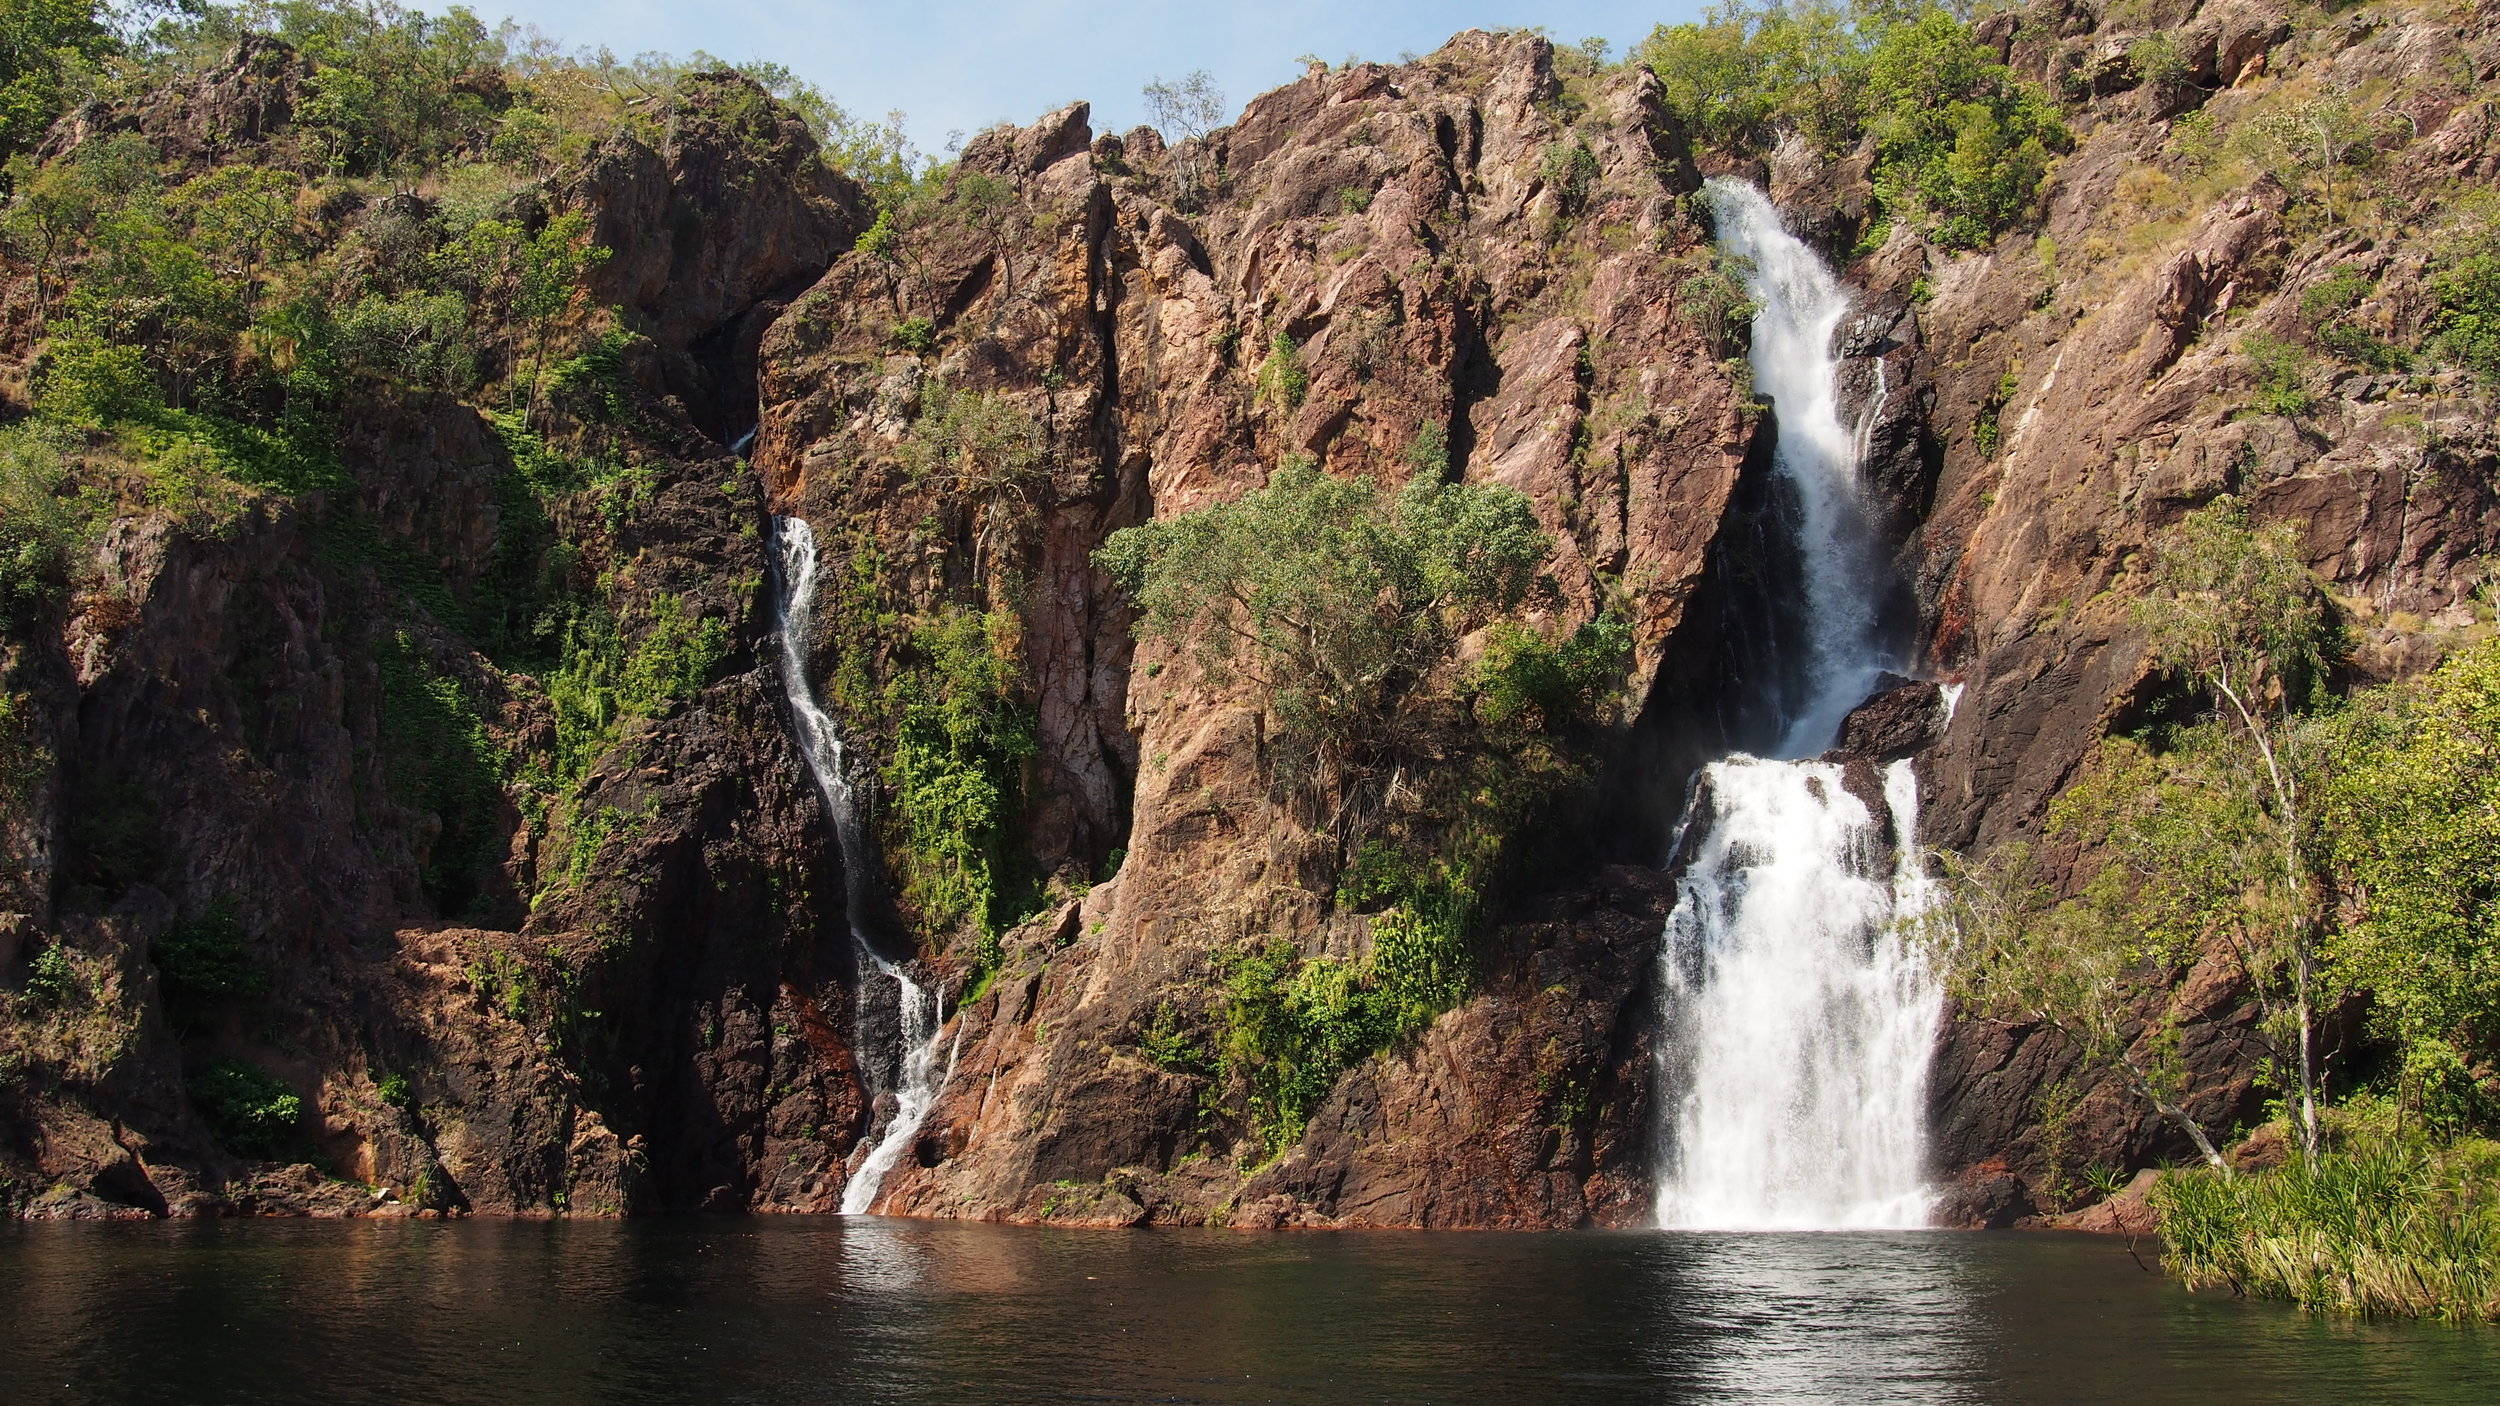 LITCHFIELD NATIONAL PARK DAY TOUR, NT DAY TOURS, KAKADU NATIONAL PARK TOUR, WANGI FALLS BY DECLAN2.jpg